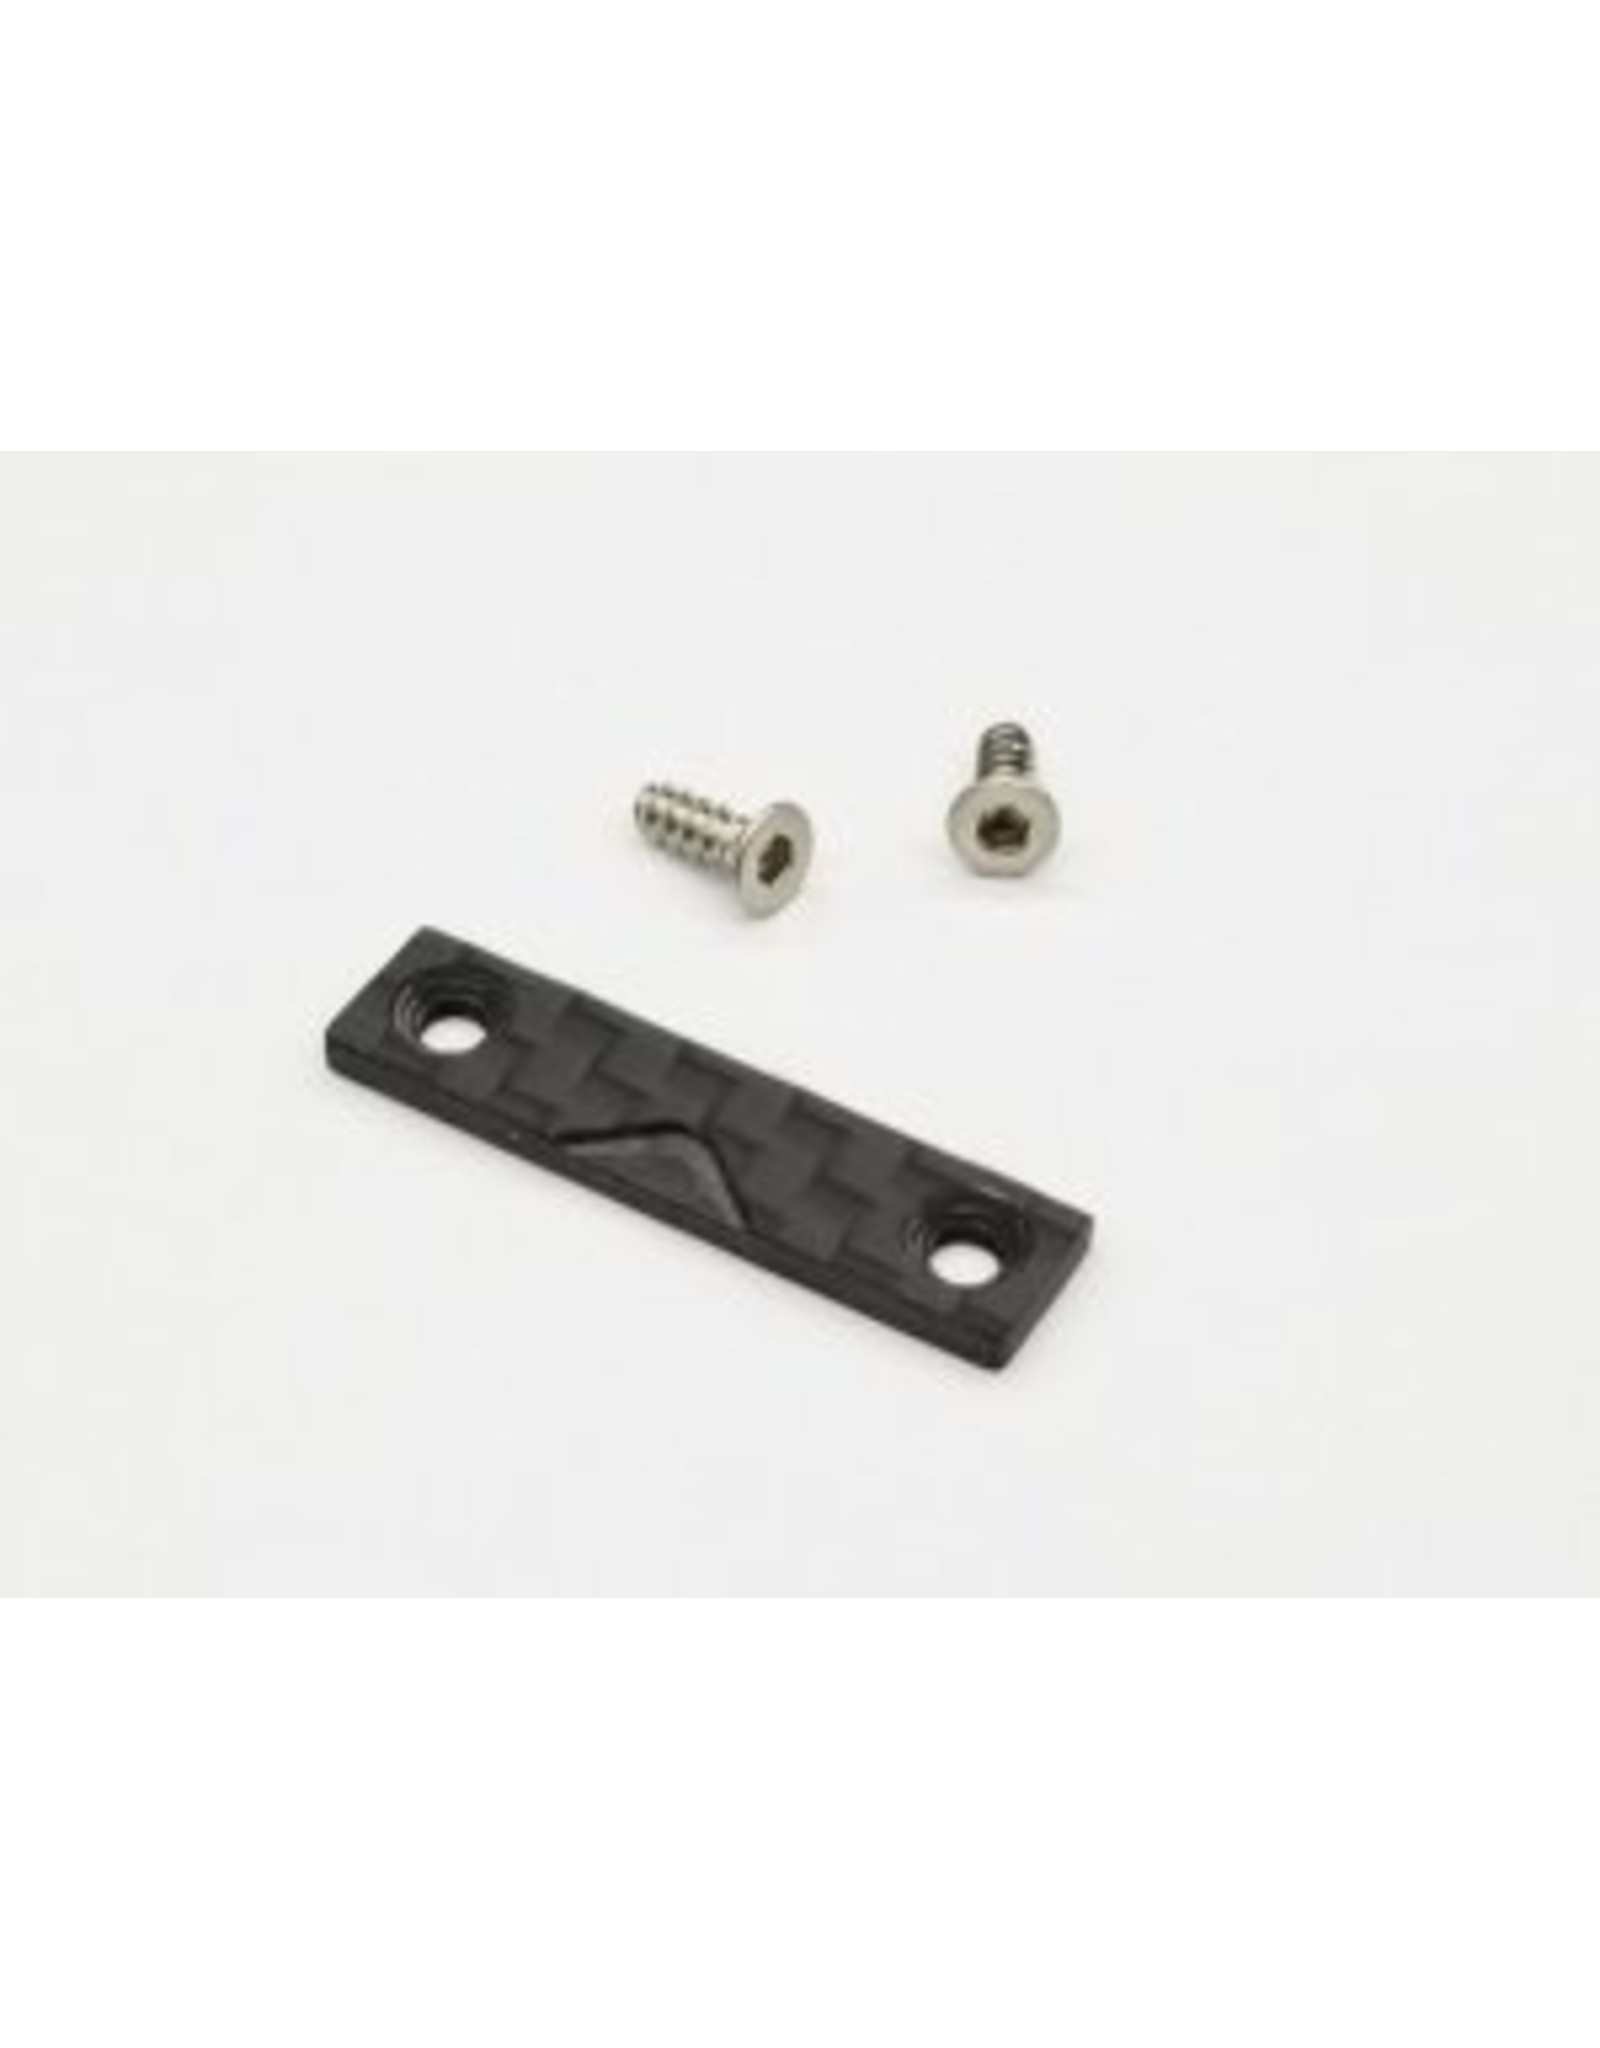 GL Racing Carbon fiber body mount protective plate (GA0005)